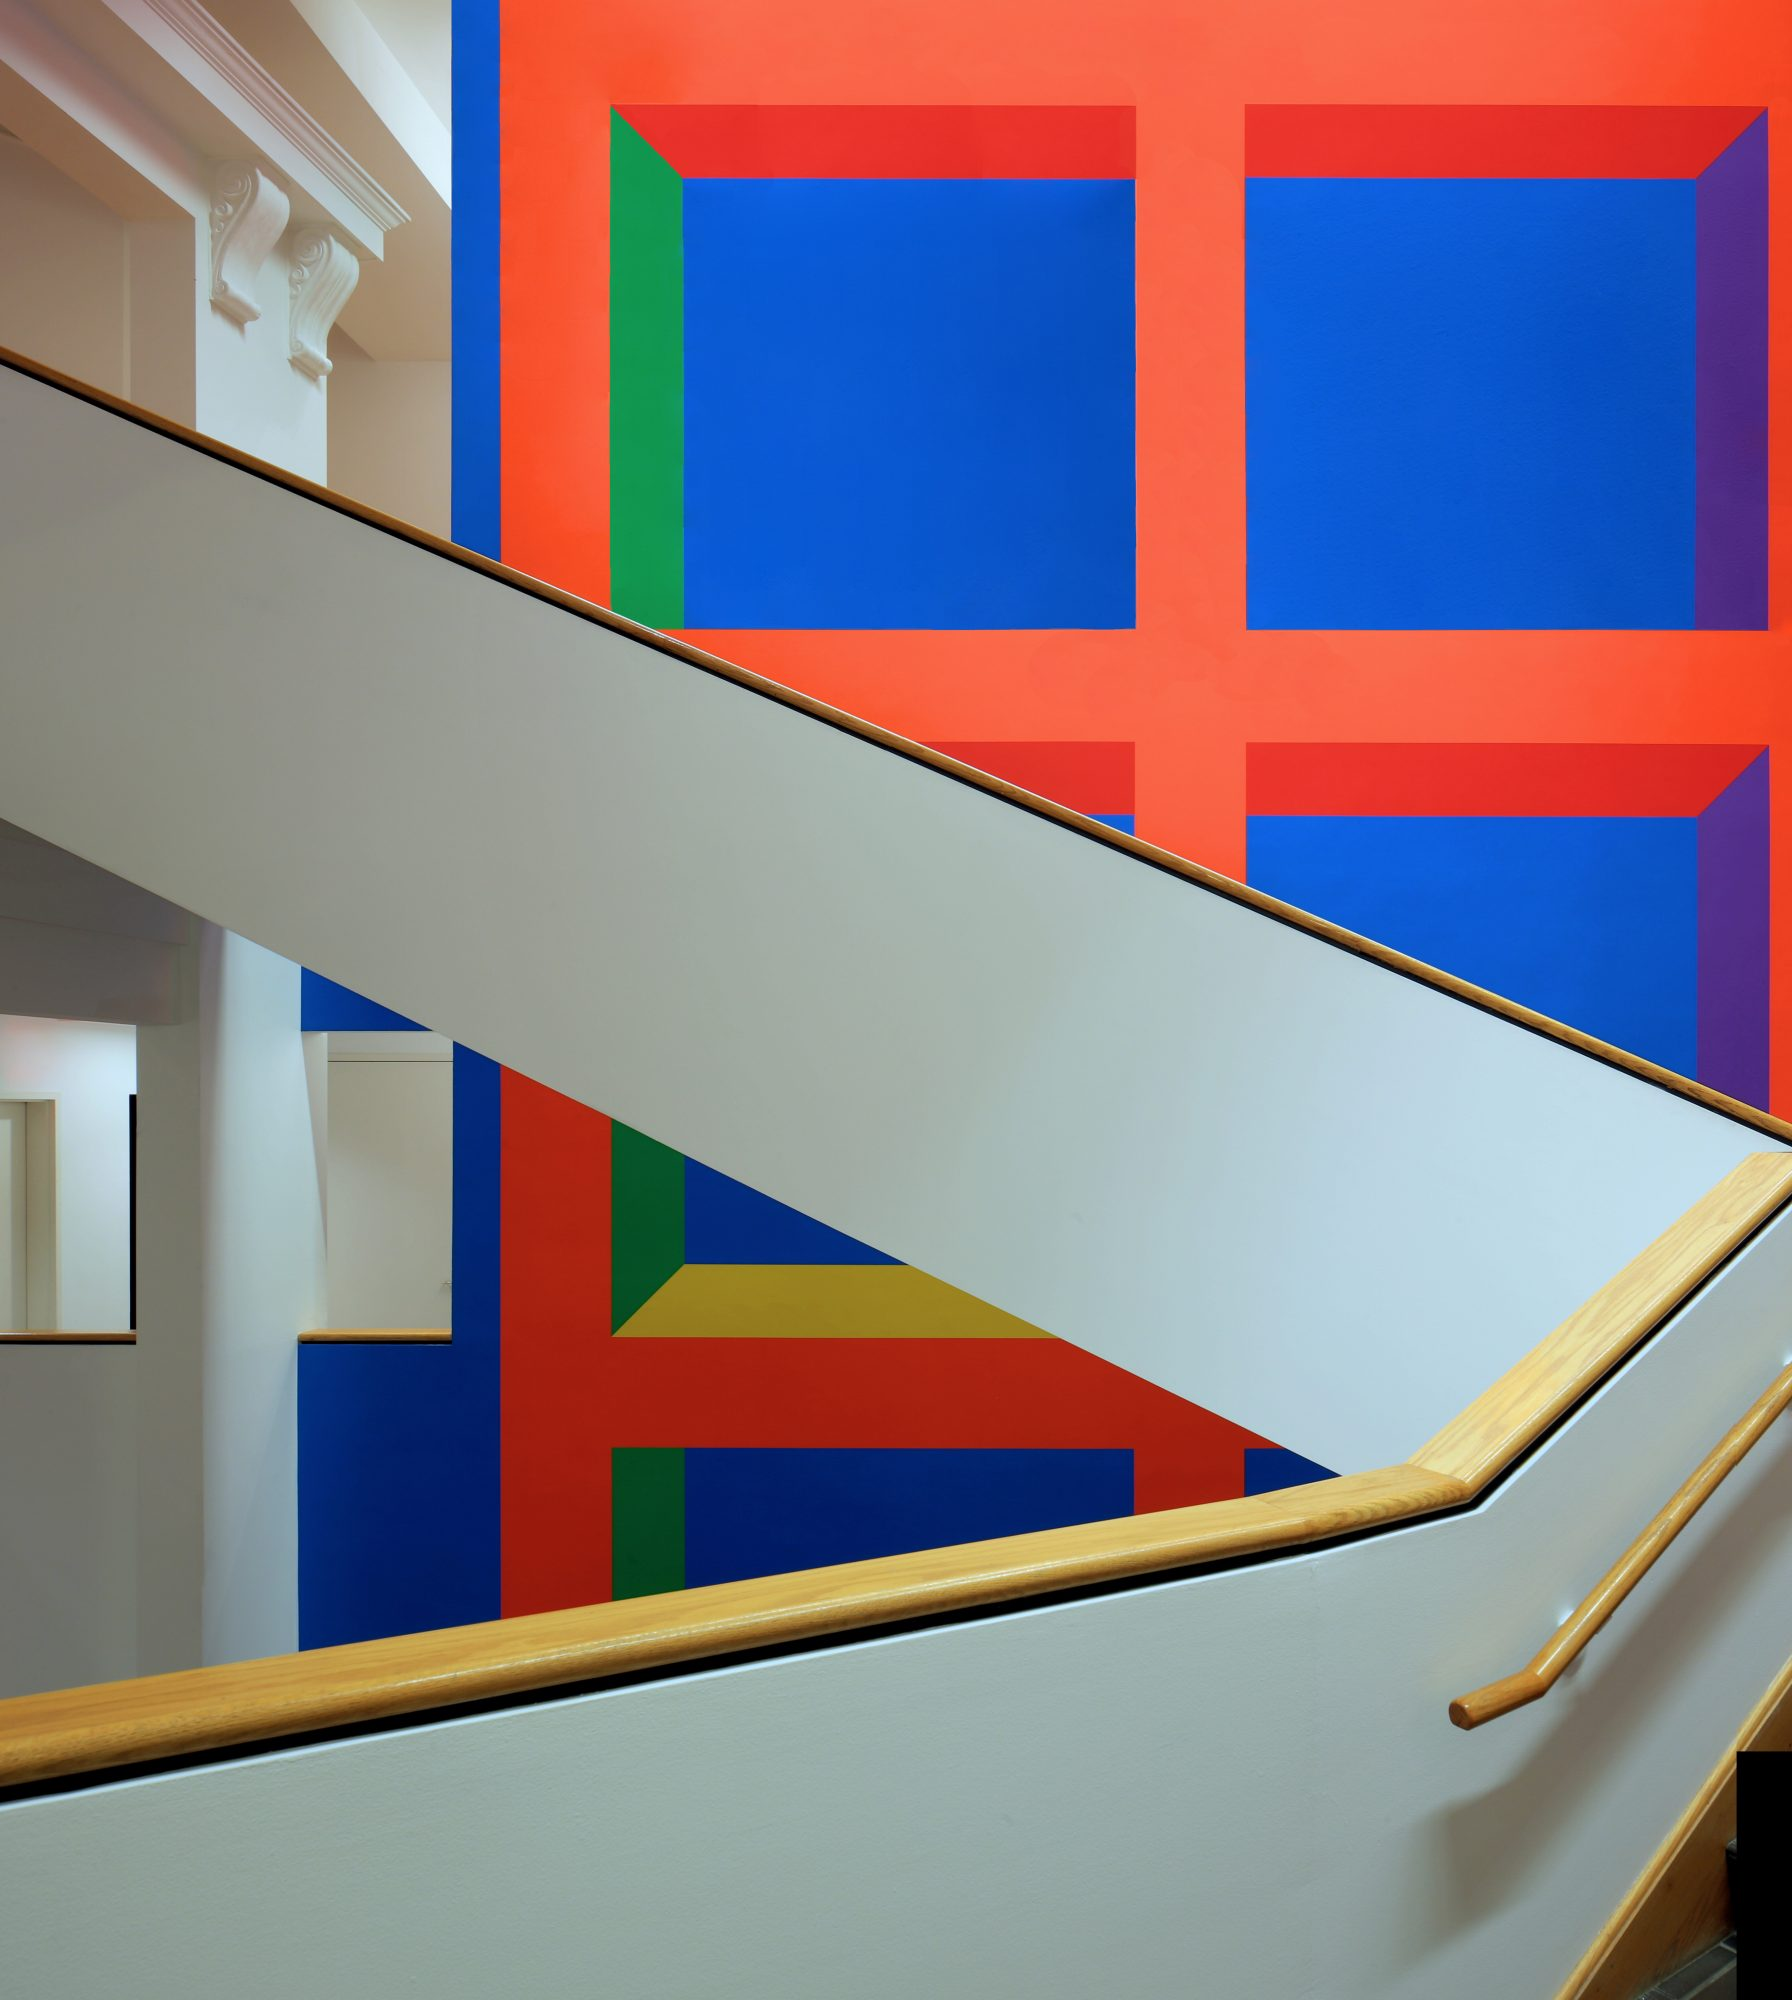 Sol LeWitt, Wall Drawing #1089, Installed in WCMA atrium 2015.